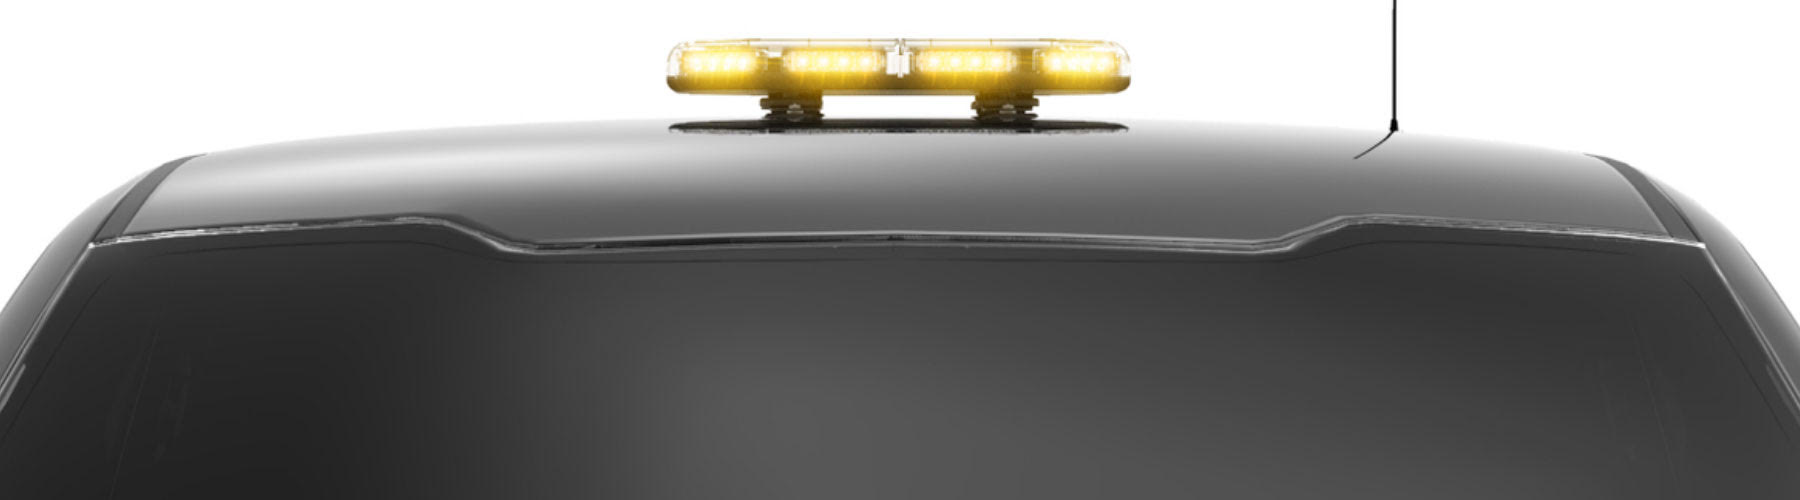 LED Mini Light Bar, LED Warning Light Bar, Magnetic Mini Bar for Emergency Vehicles